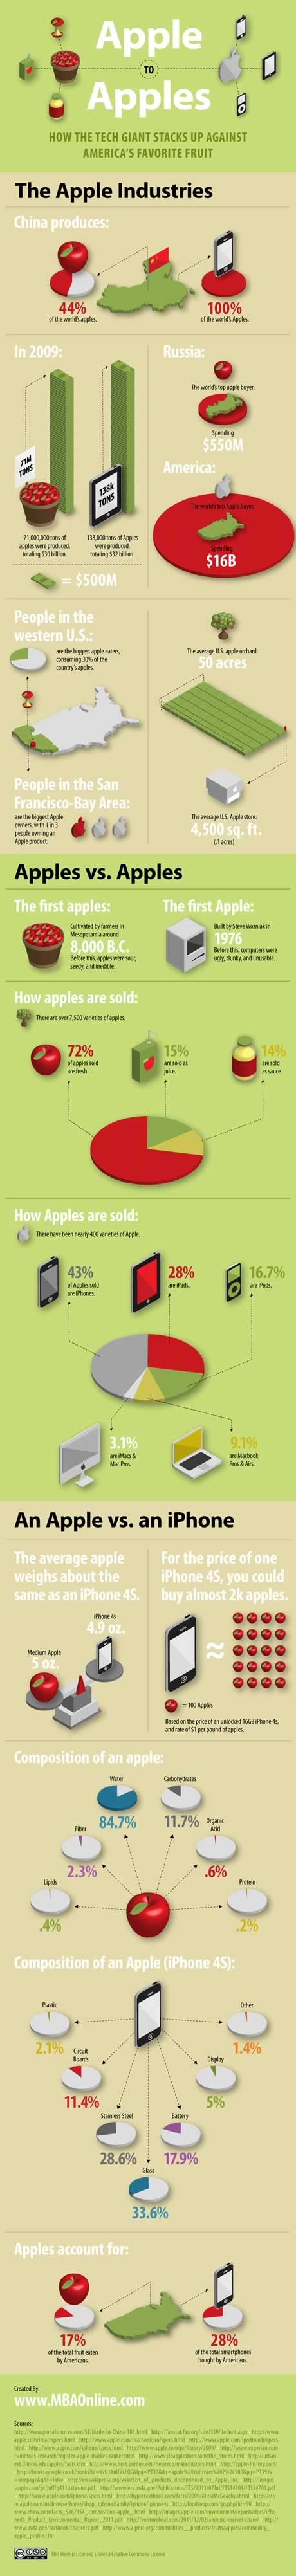 infografia apple manzana